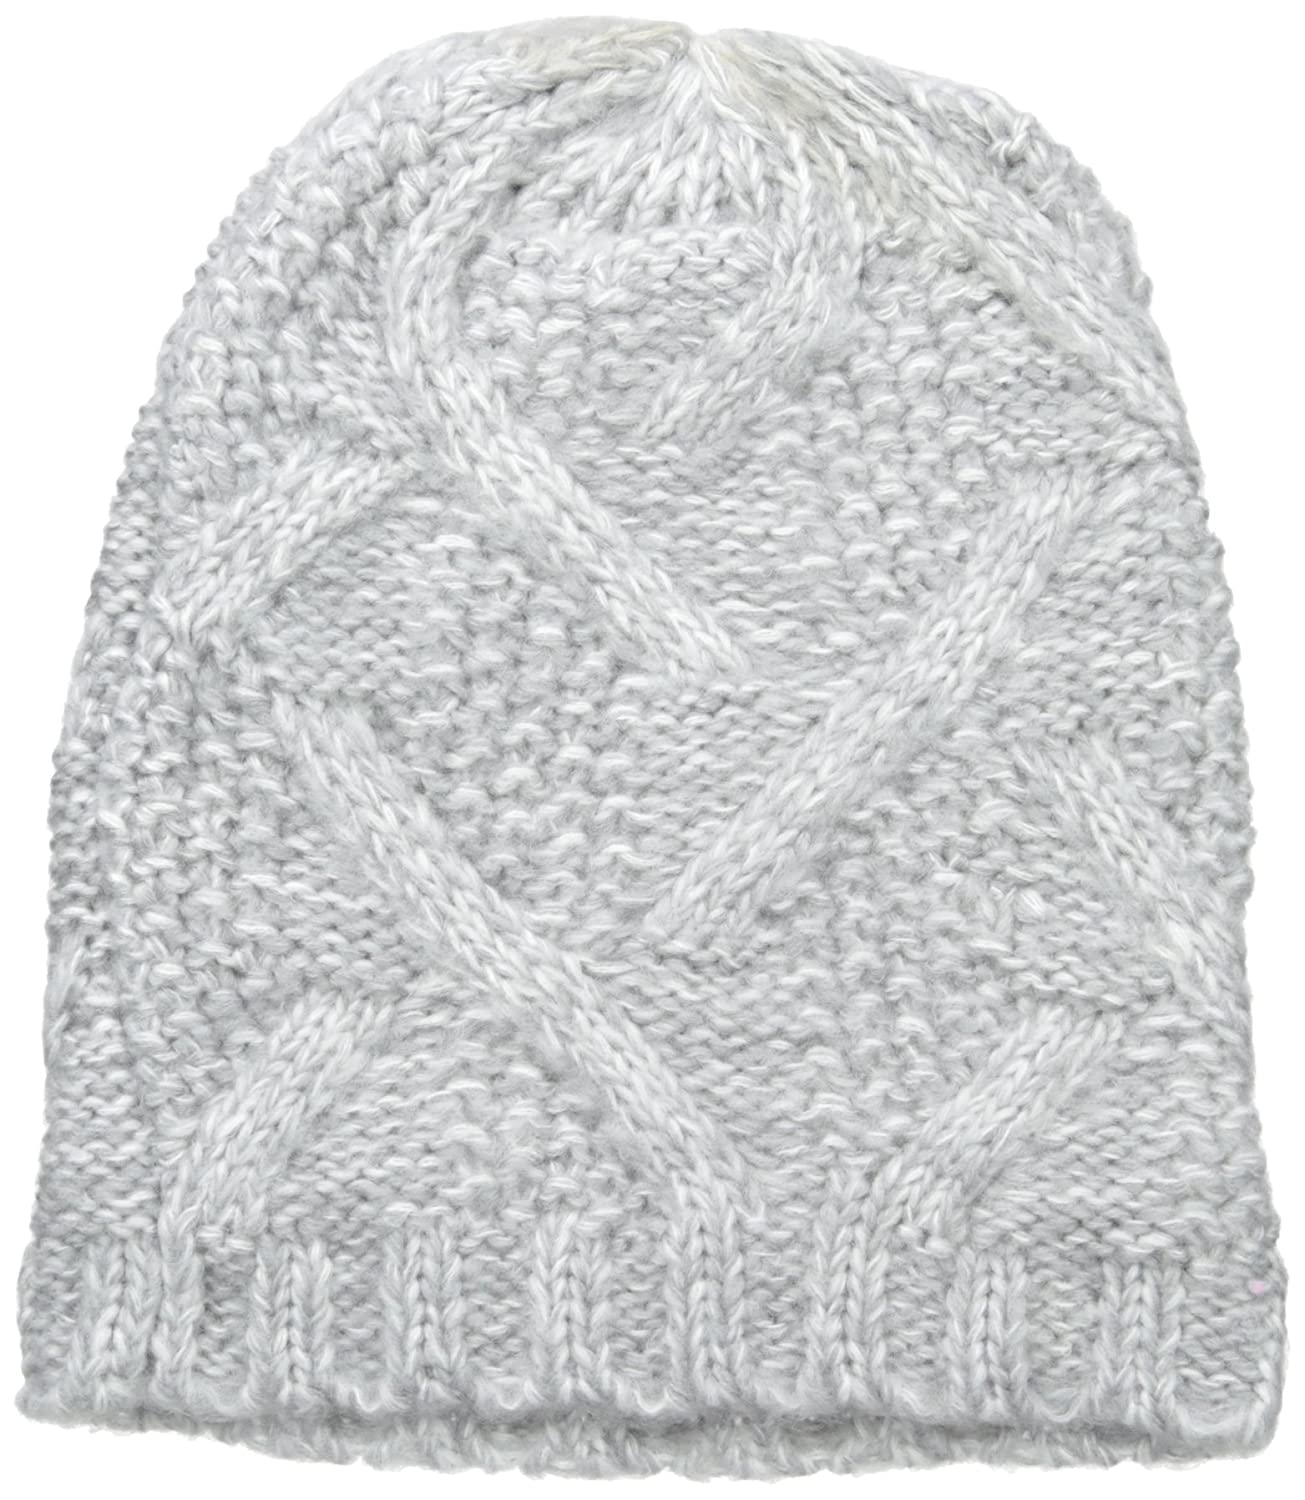 Nine West Women s Crazy Cable Marled Slouchy Beanie b54bf3e4a7